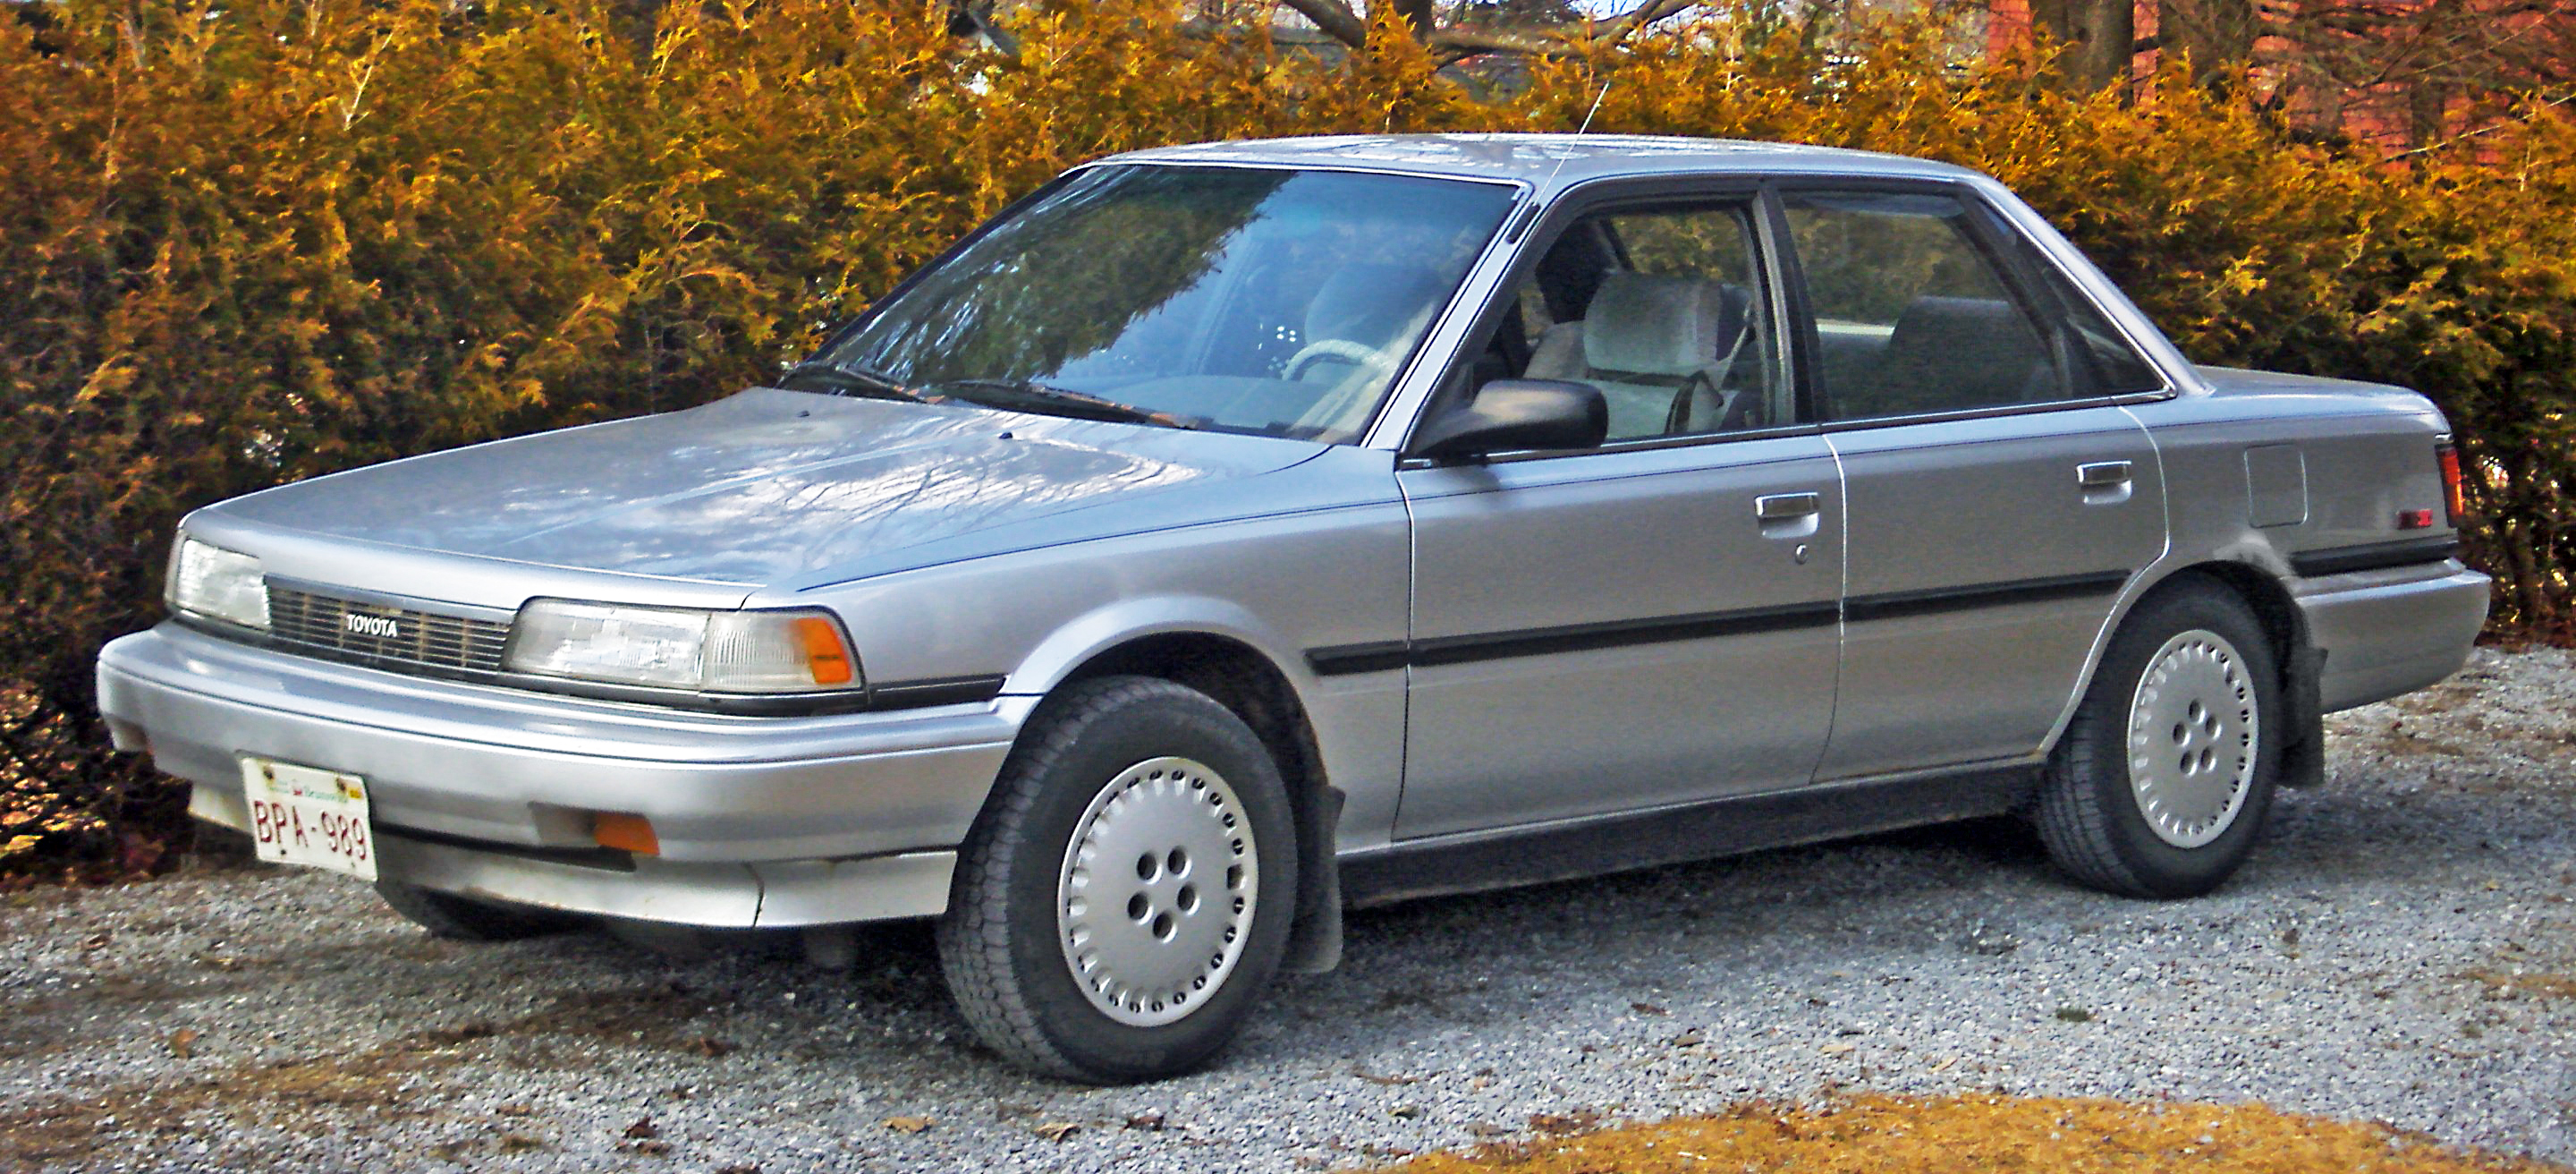 1990 Toyota Corolla Compact E9 Pictures Information And Specs 1988 Ae92 Wiring Diagram Pics 3